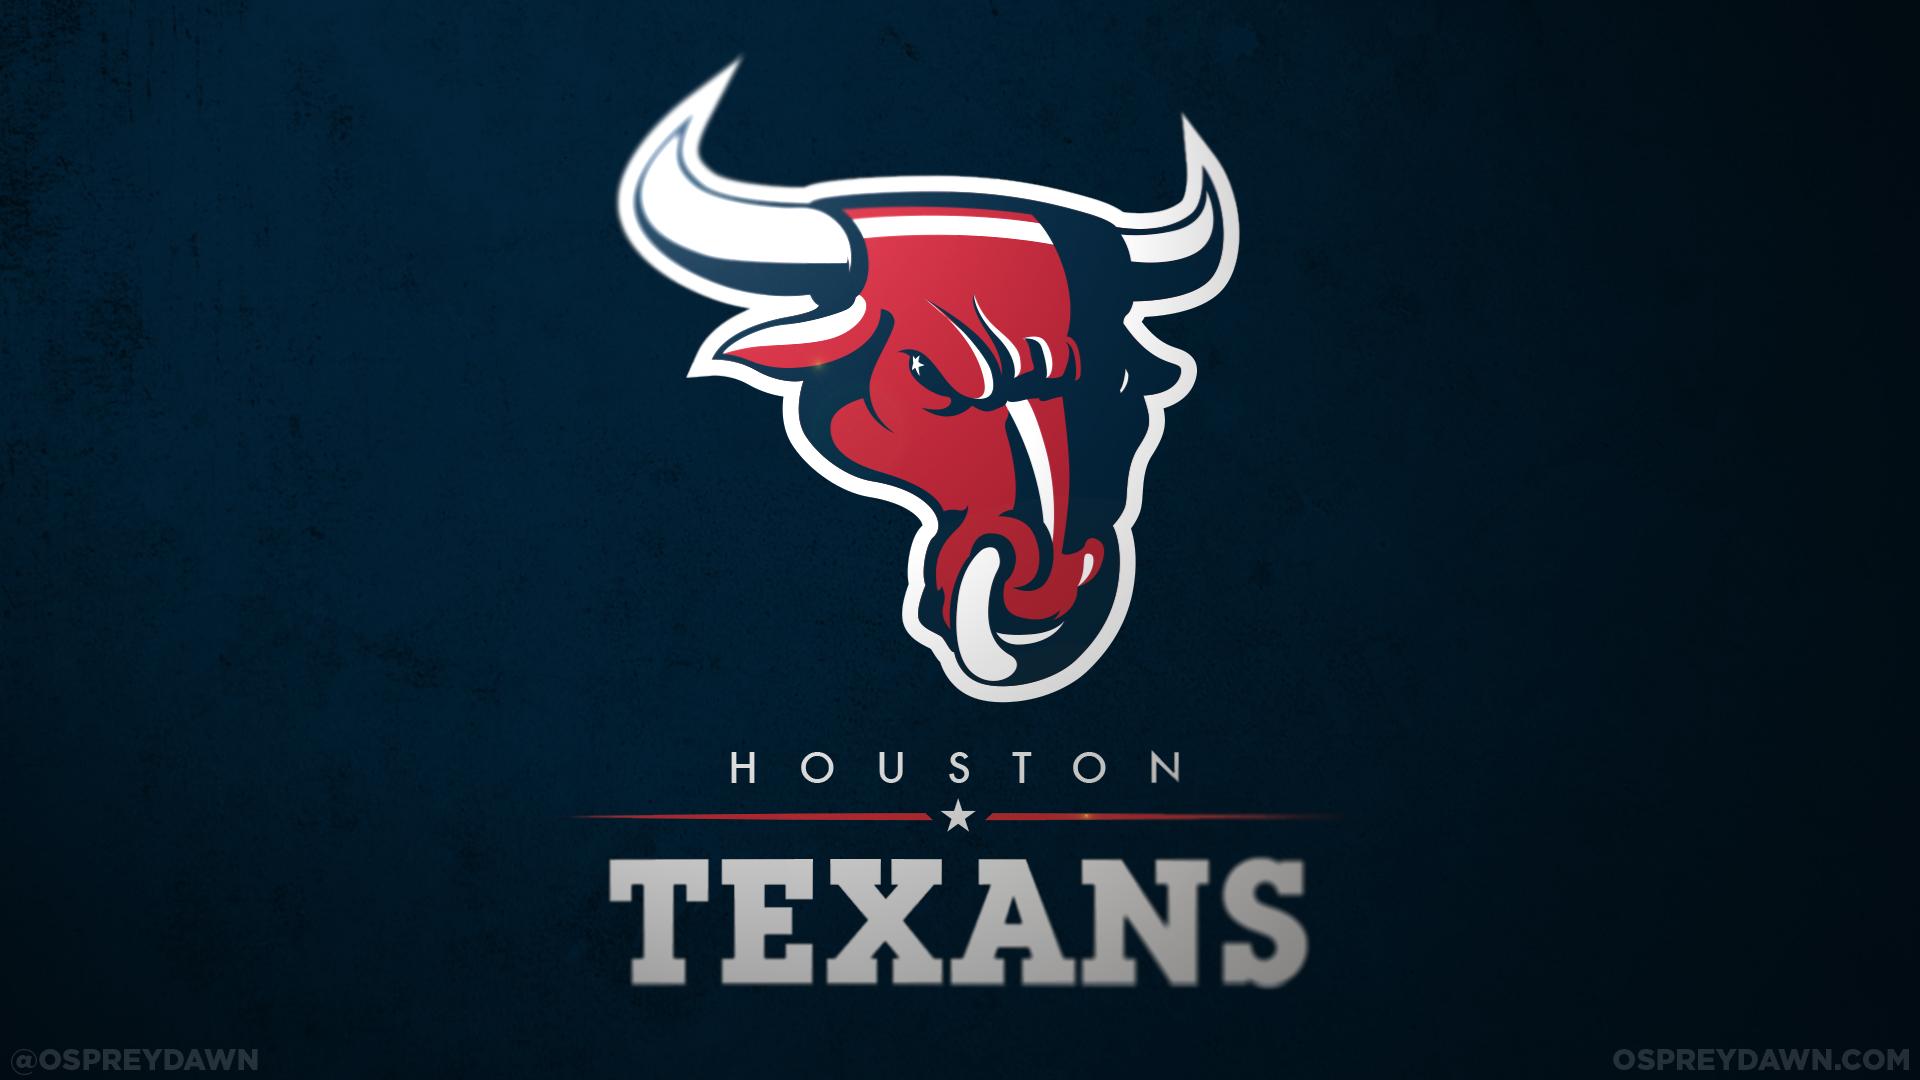 HOUSTON TEXANS nfl football f wallpaper